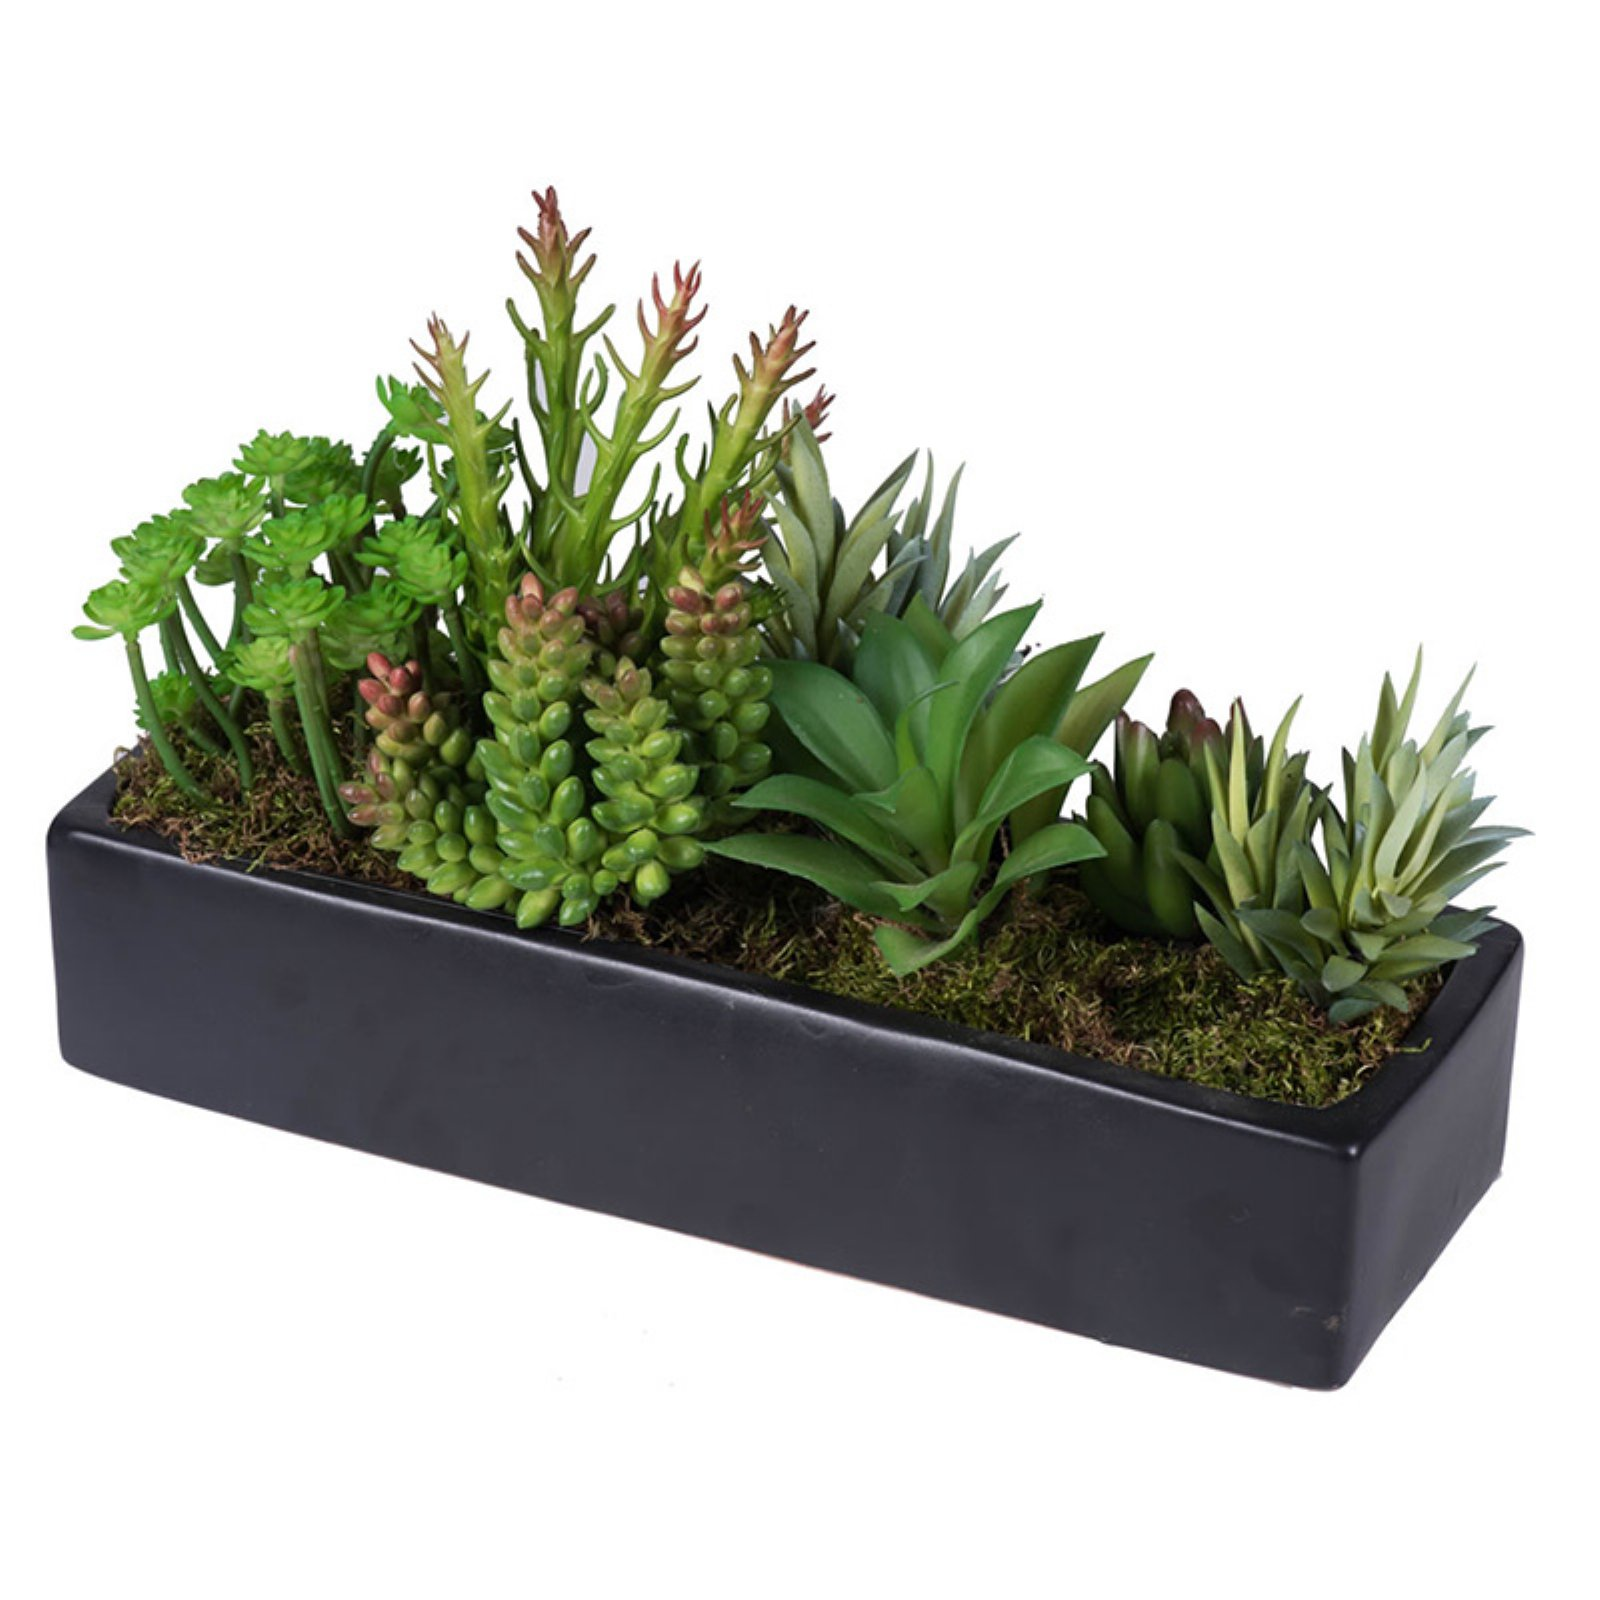 "Vickerman Tastefully Arranged Variety of Succulent Plants in 12"" Black Tray"